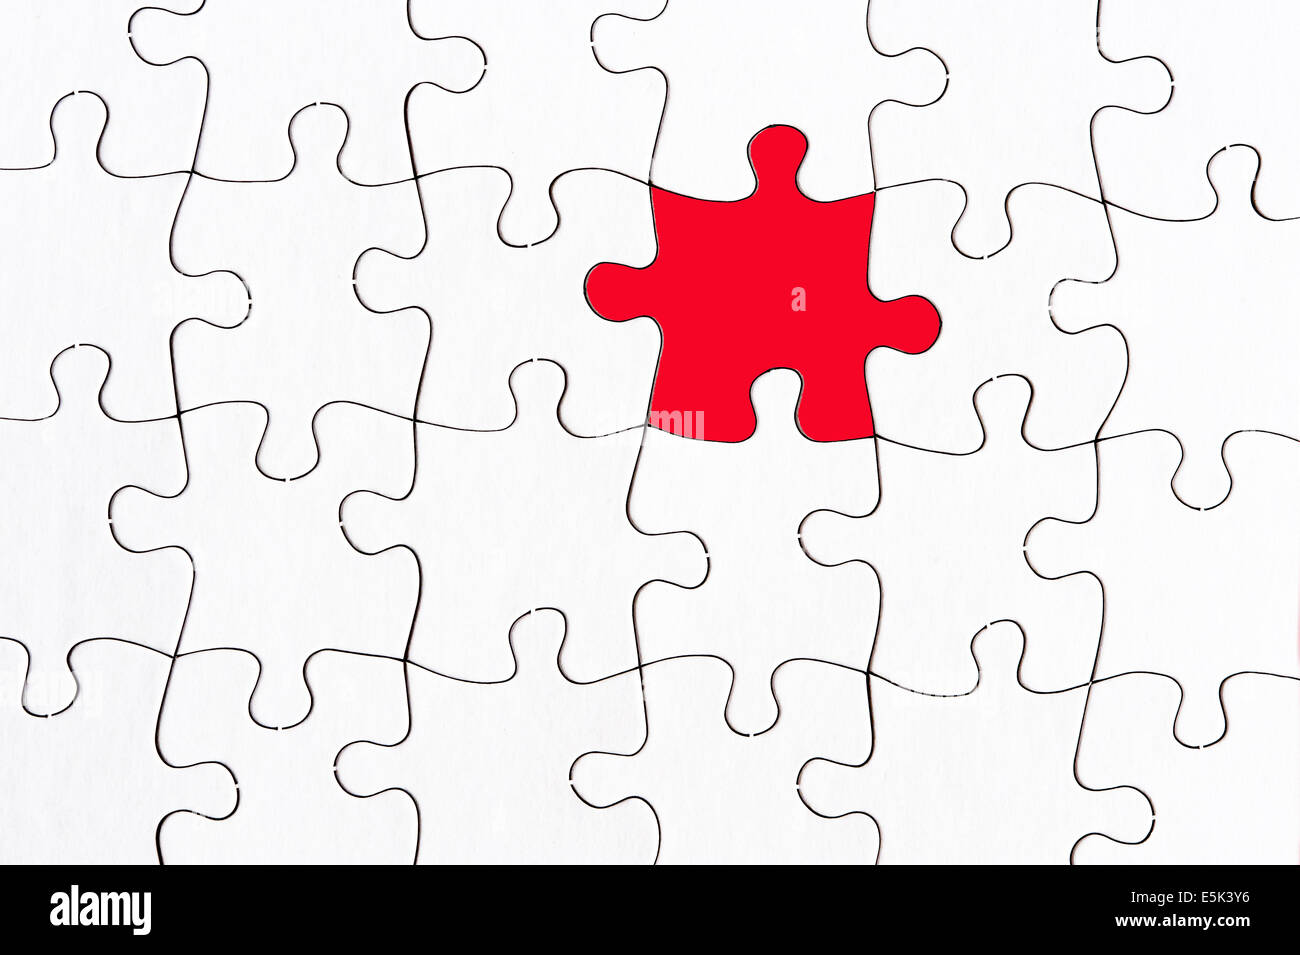 Missing Piece Of The Puzzle Imágenes De Stock & Missing